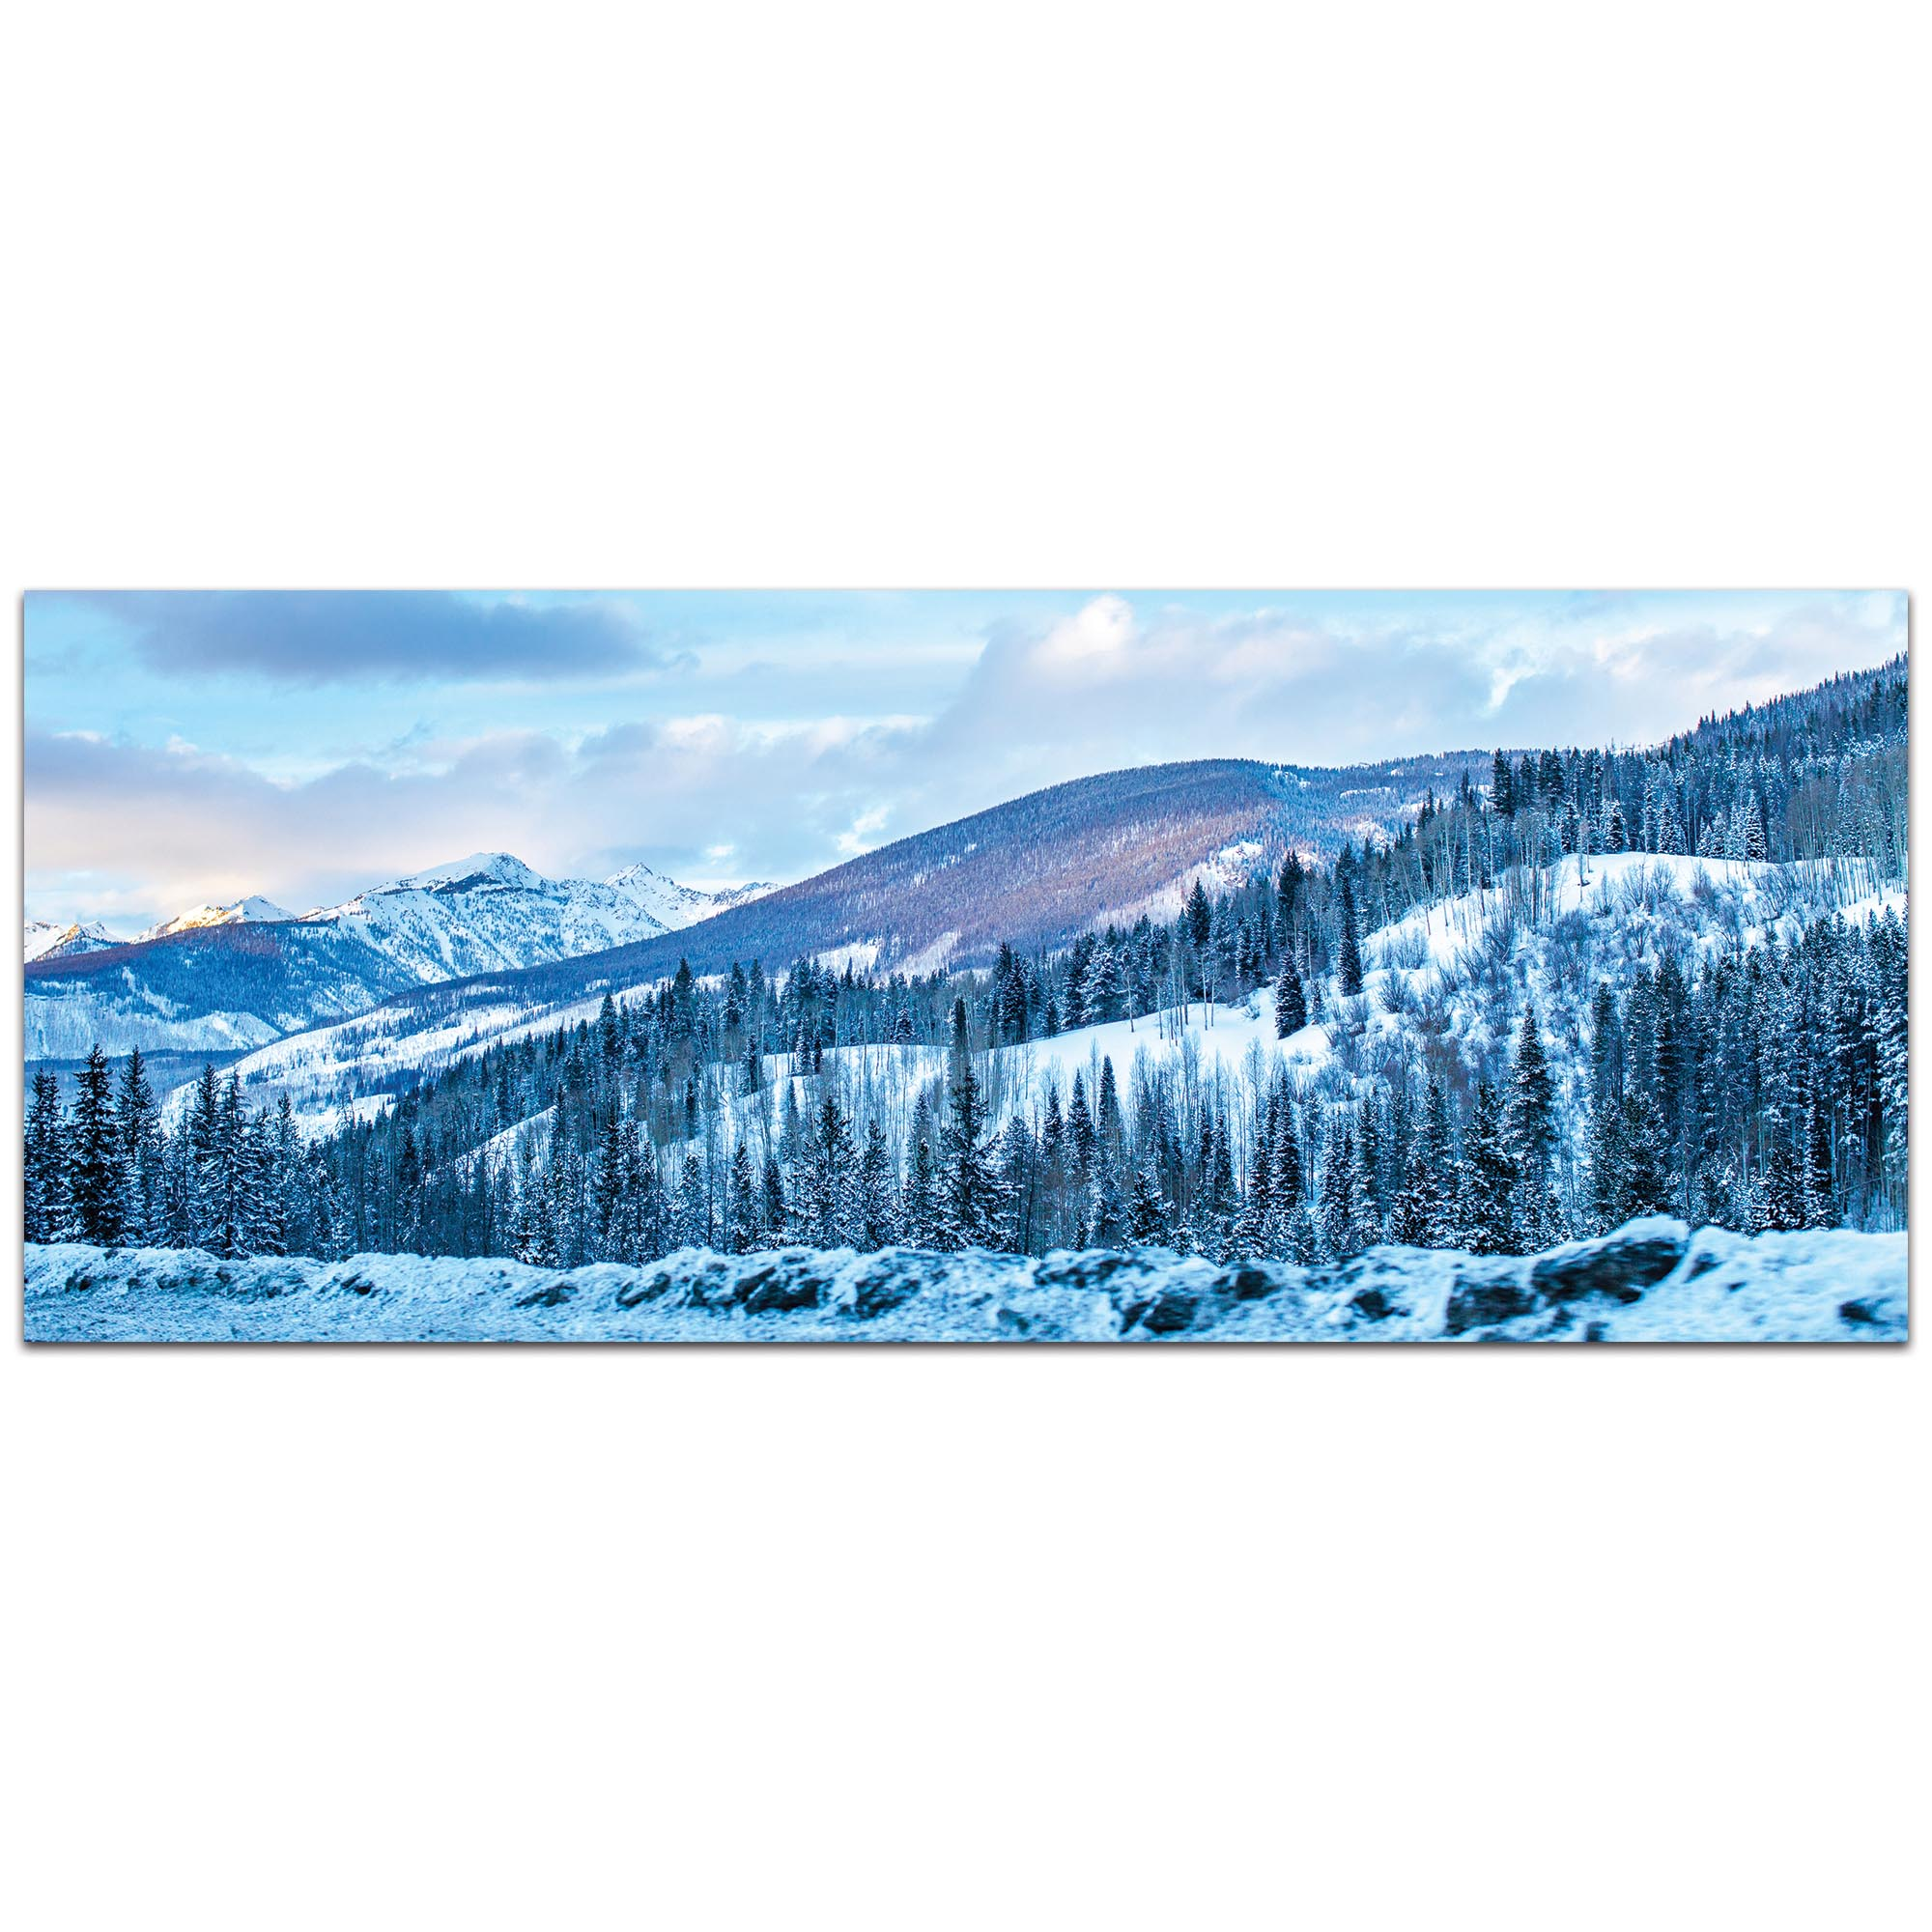 Landscape Photography 'The Slopes' - Winter Scene Art on Metal or Plexiglass